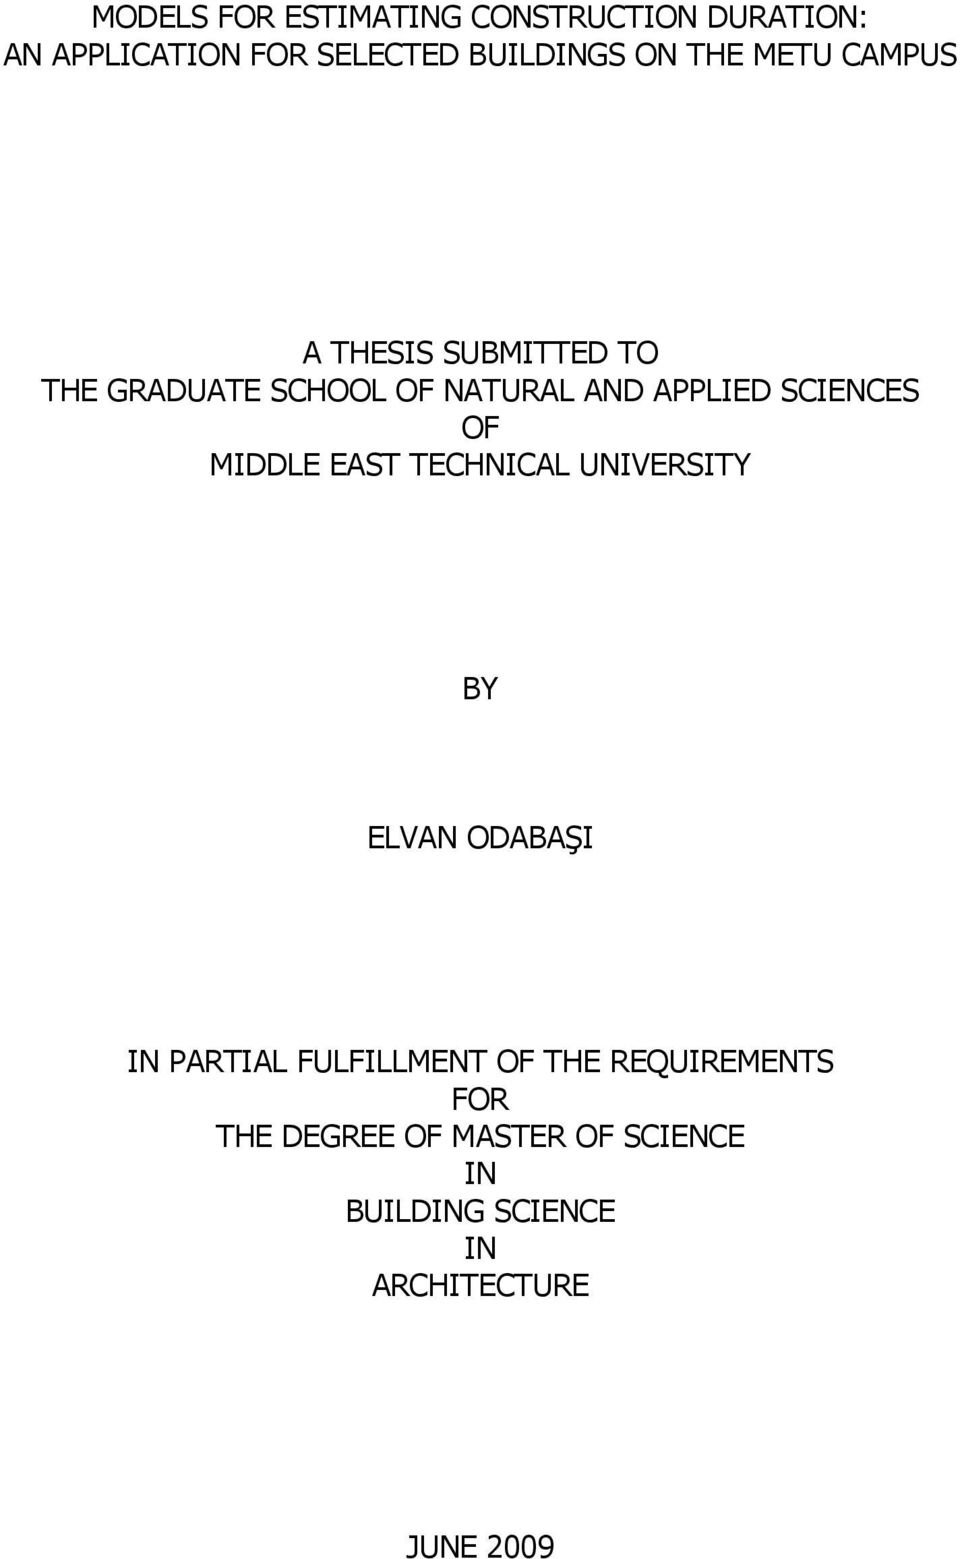 SCIENCES OF MIDDLE EAST TECHNICAL UNIVERSITY BY ELVAN ODABAŞI IN PARTIAL FULFILLMENT OF